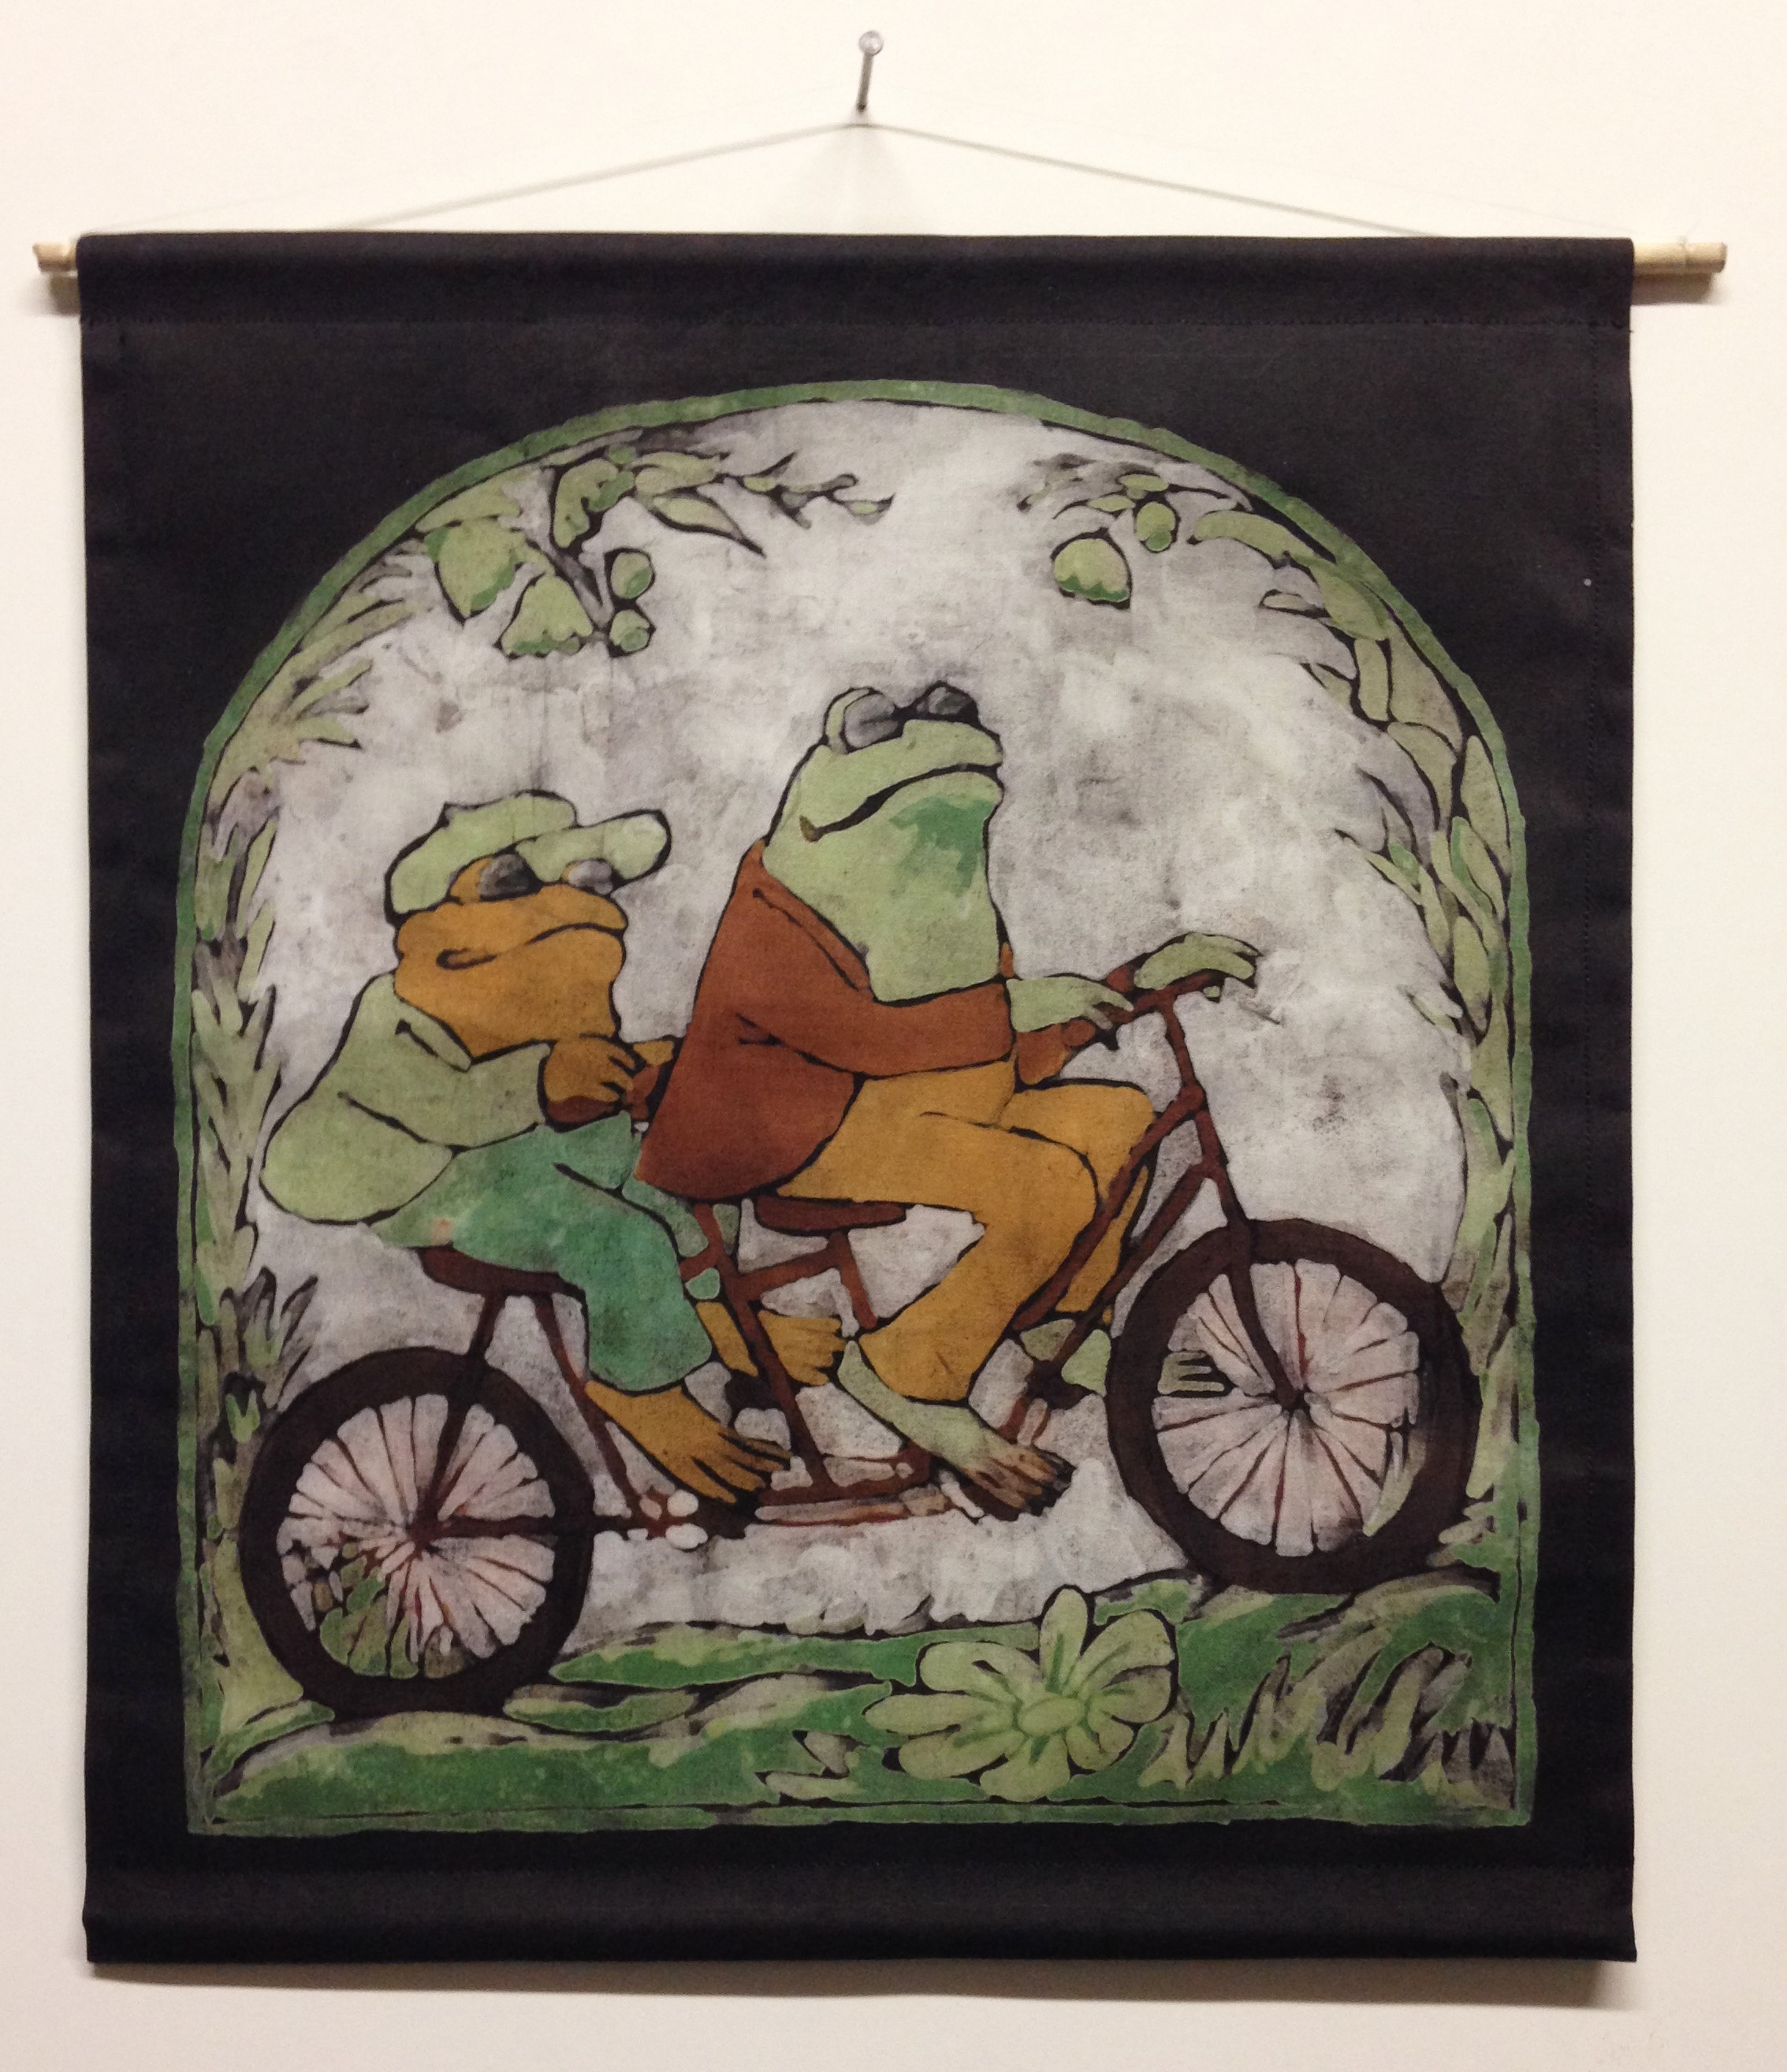 frog and toad riding bike.jpg